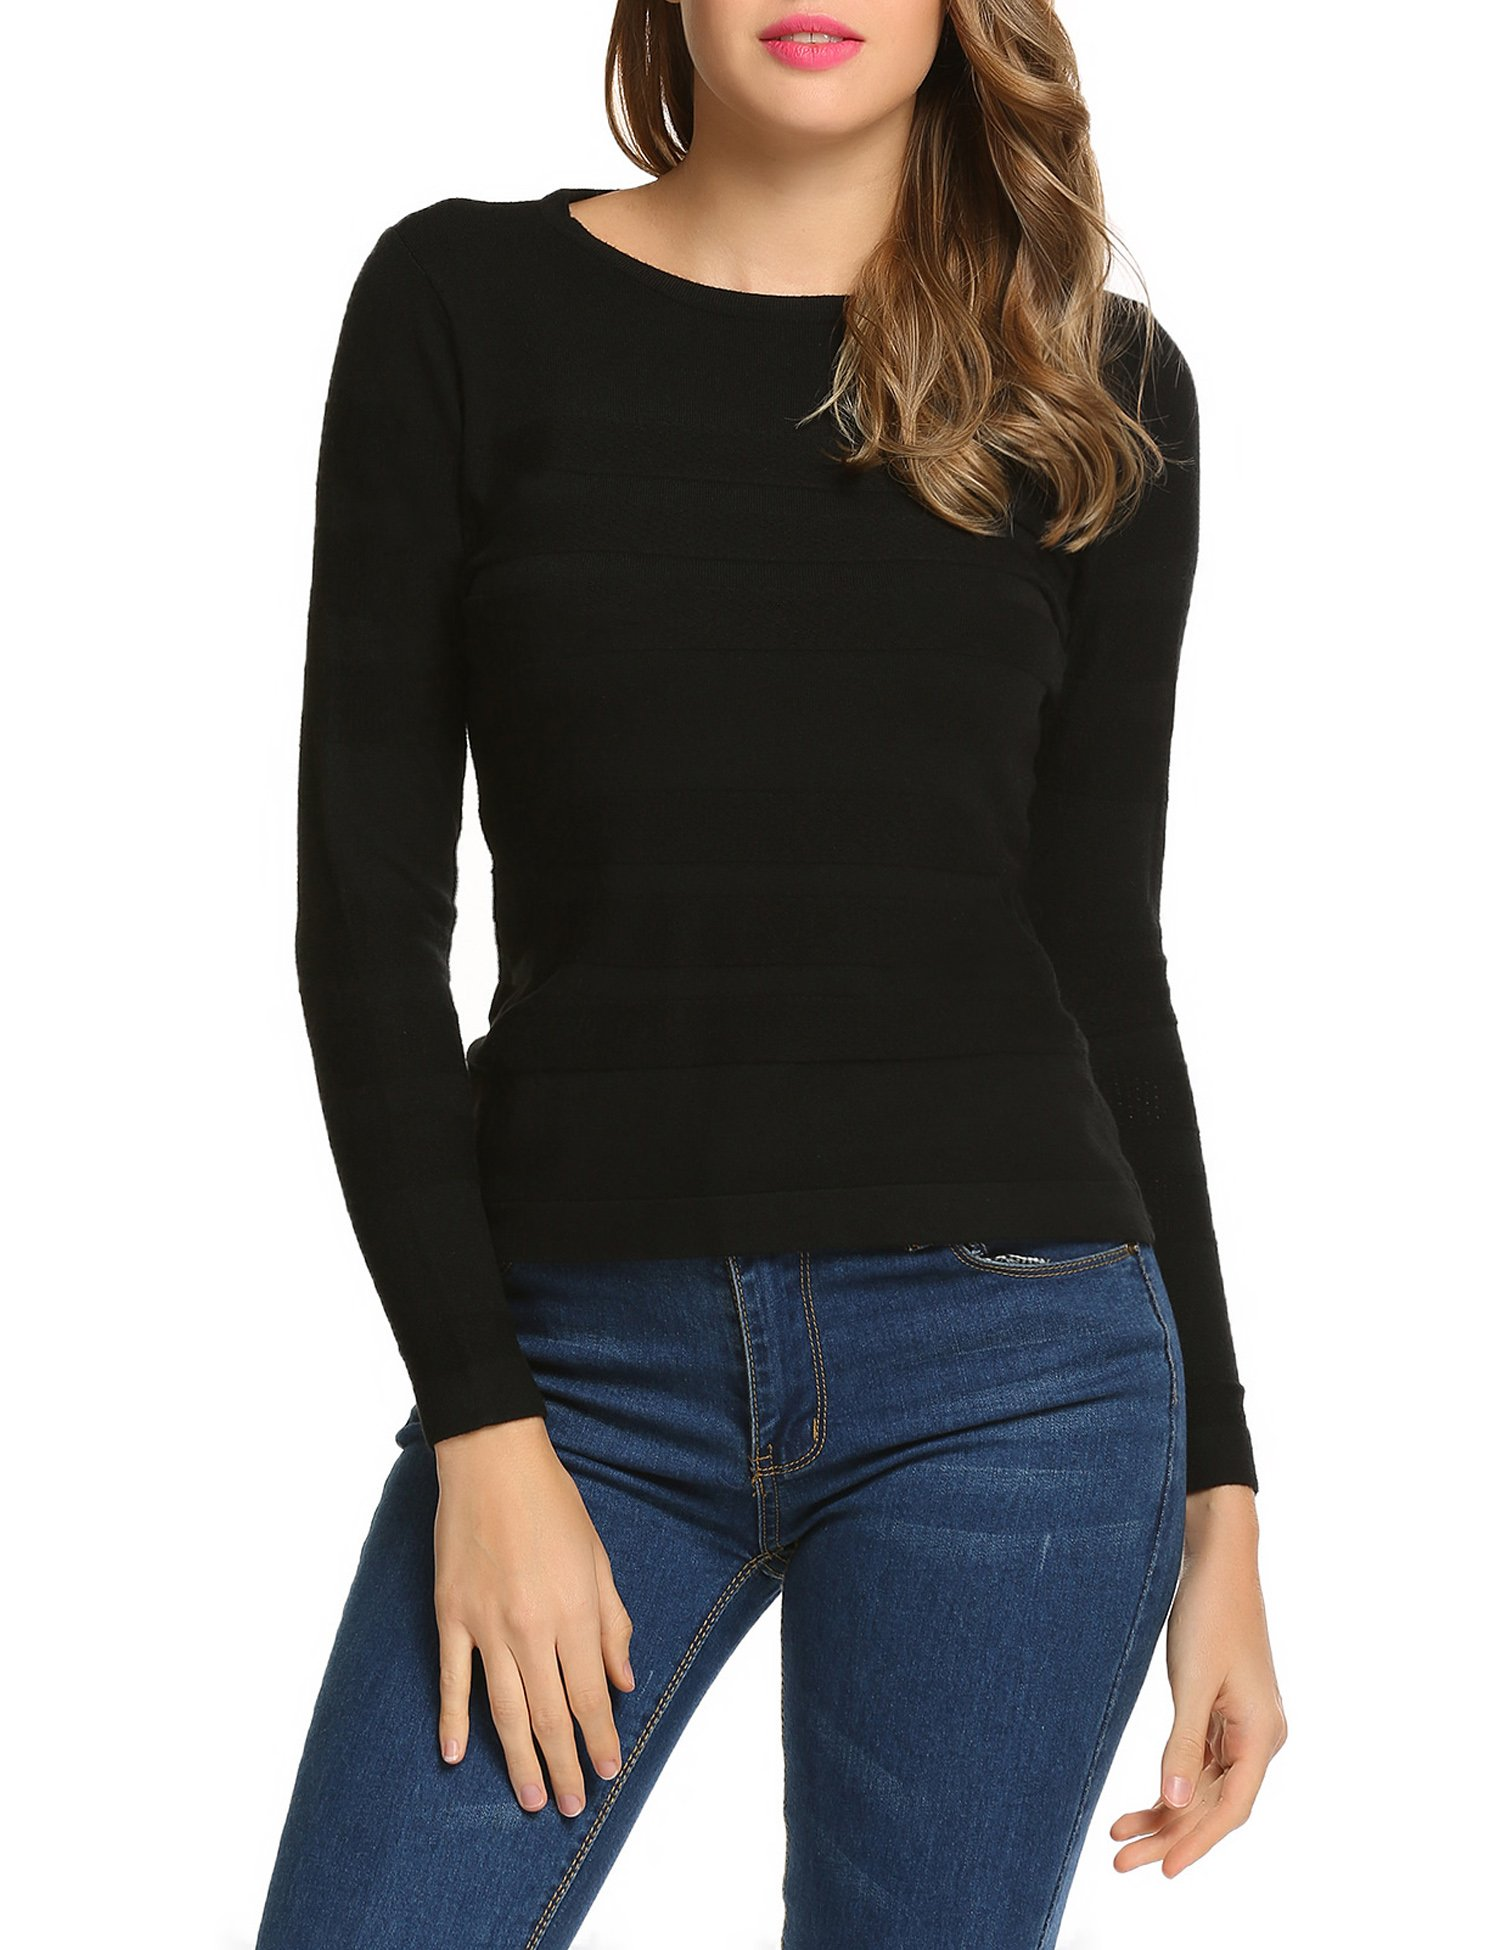 UNibelle Women's Pure Cashmere Long Sleeve Pullover Crew Neck Sweater(Black,XX-Large)